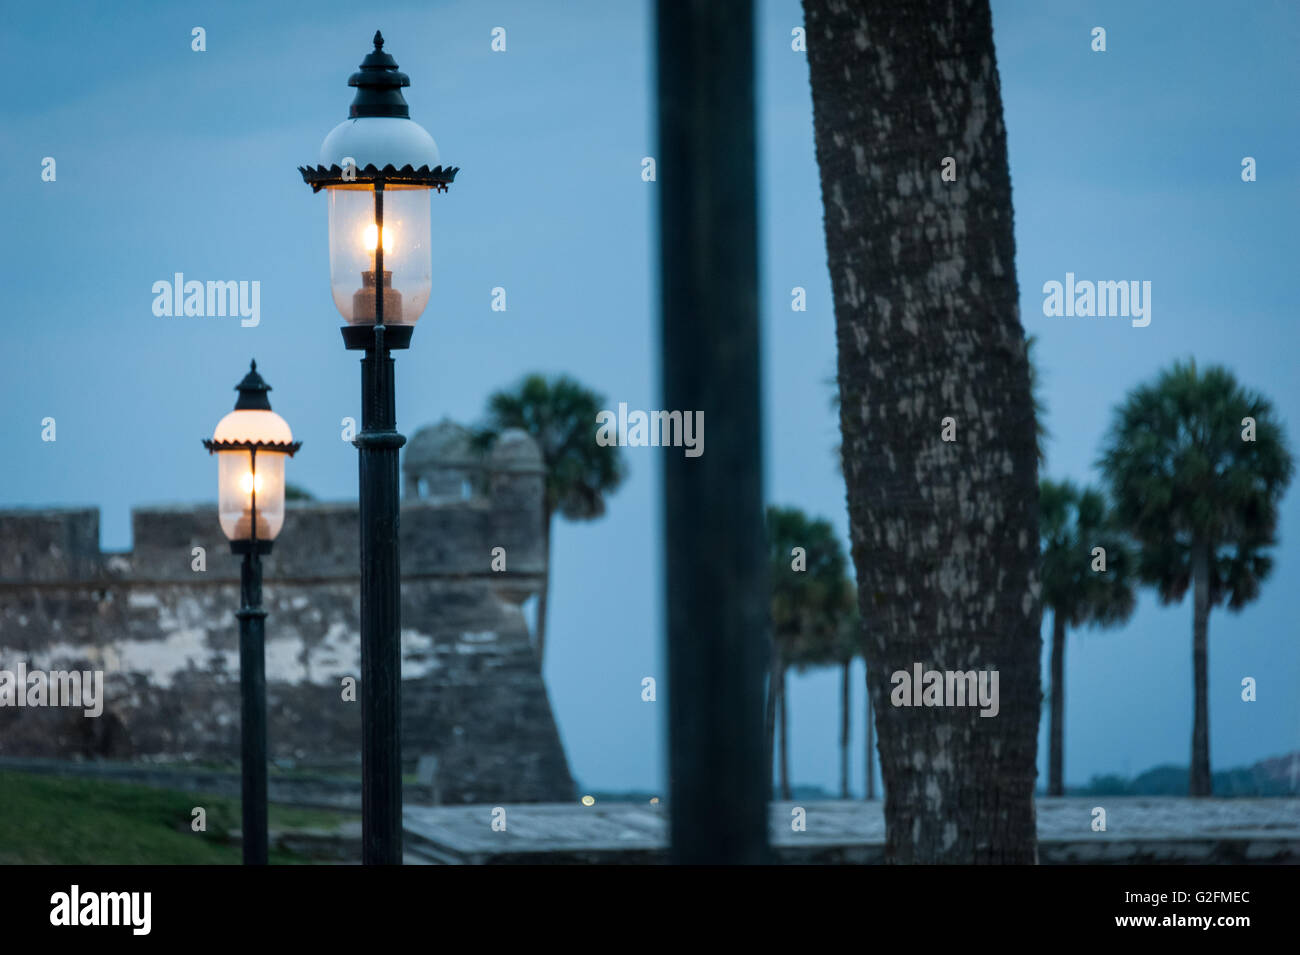 Glowing lamps along the bayfront at Castillo de San Marcos in St. Augustine, Florida, USA. - Stock Image